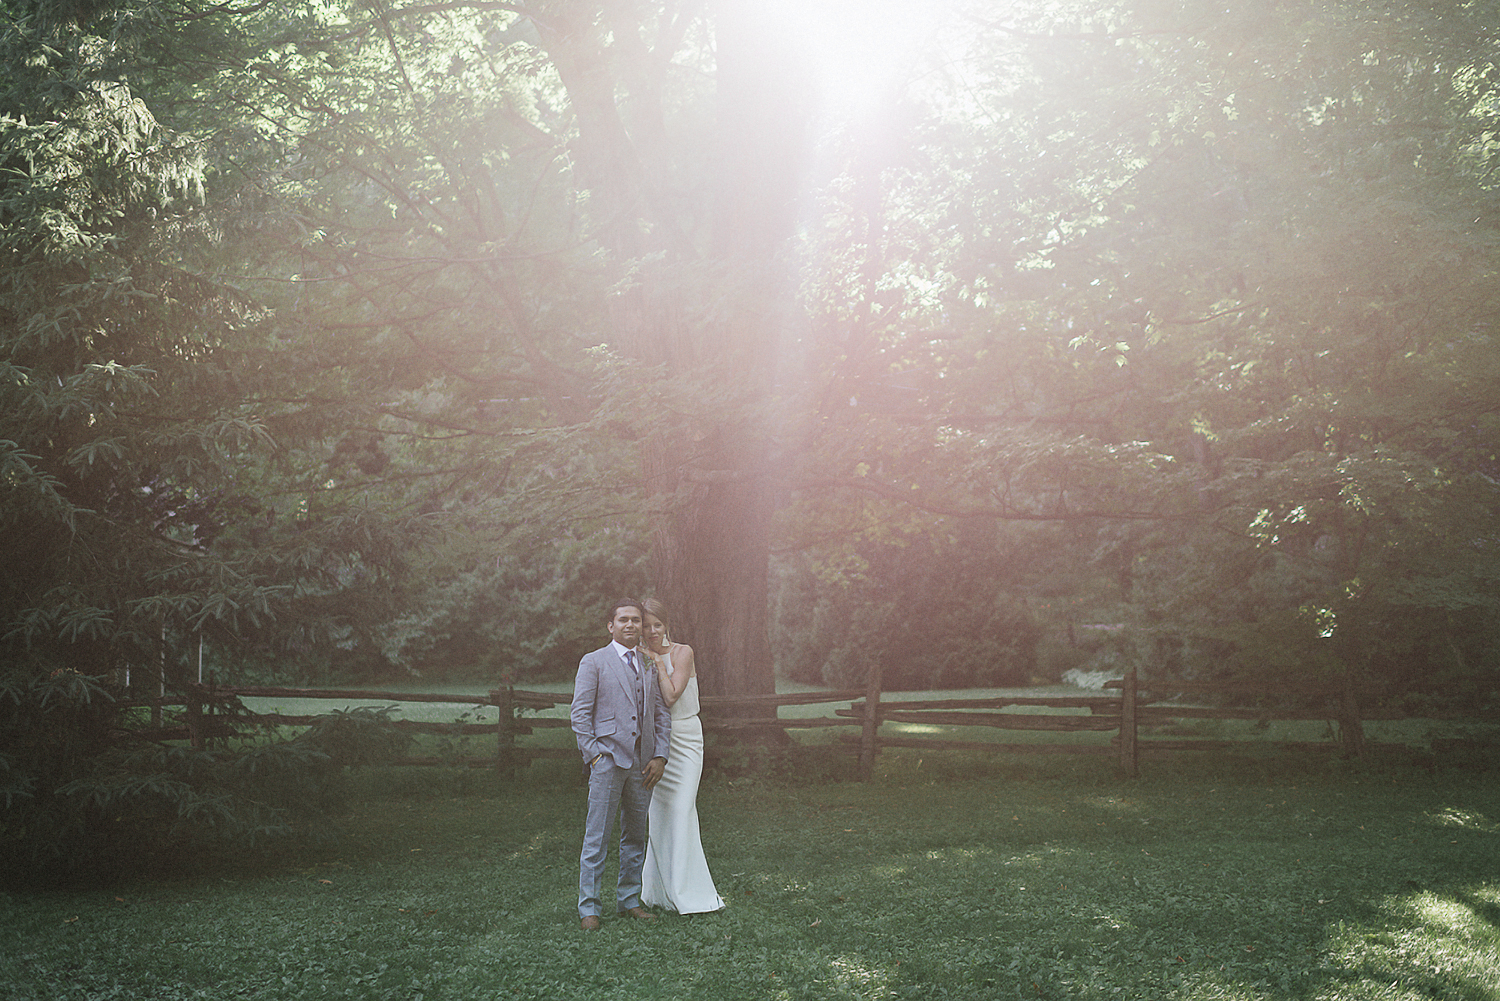 Fine-Art-Documentary-Wedding-Photographer-Toronto-Ontario-Canada_-High-Park-The-Lodge-Outdoor-Forest-Wedding_-Candid-moment-between-bride-and-groom--Lost-in-Forest-Trees-Epic-Candid-Moment-candid-portrait-among-forest-trees-Alternative.jpg